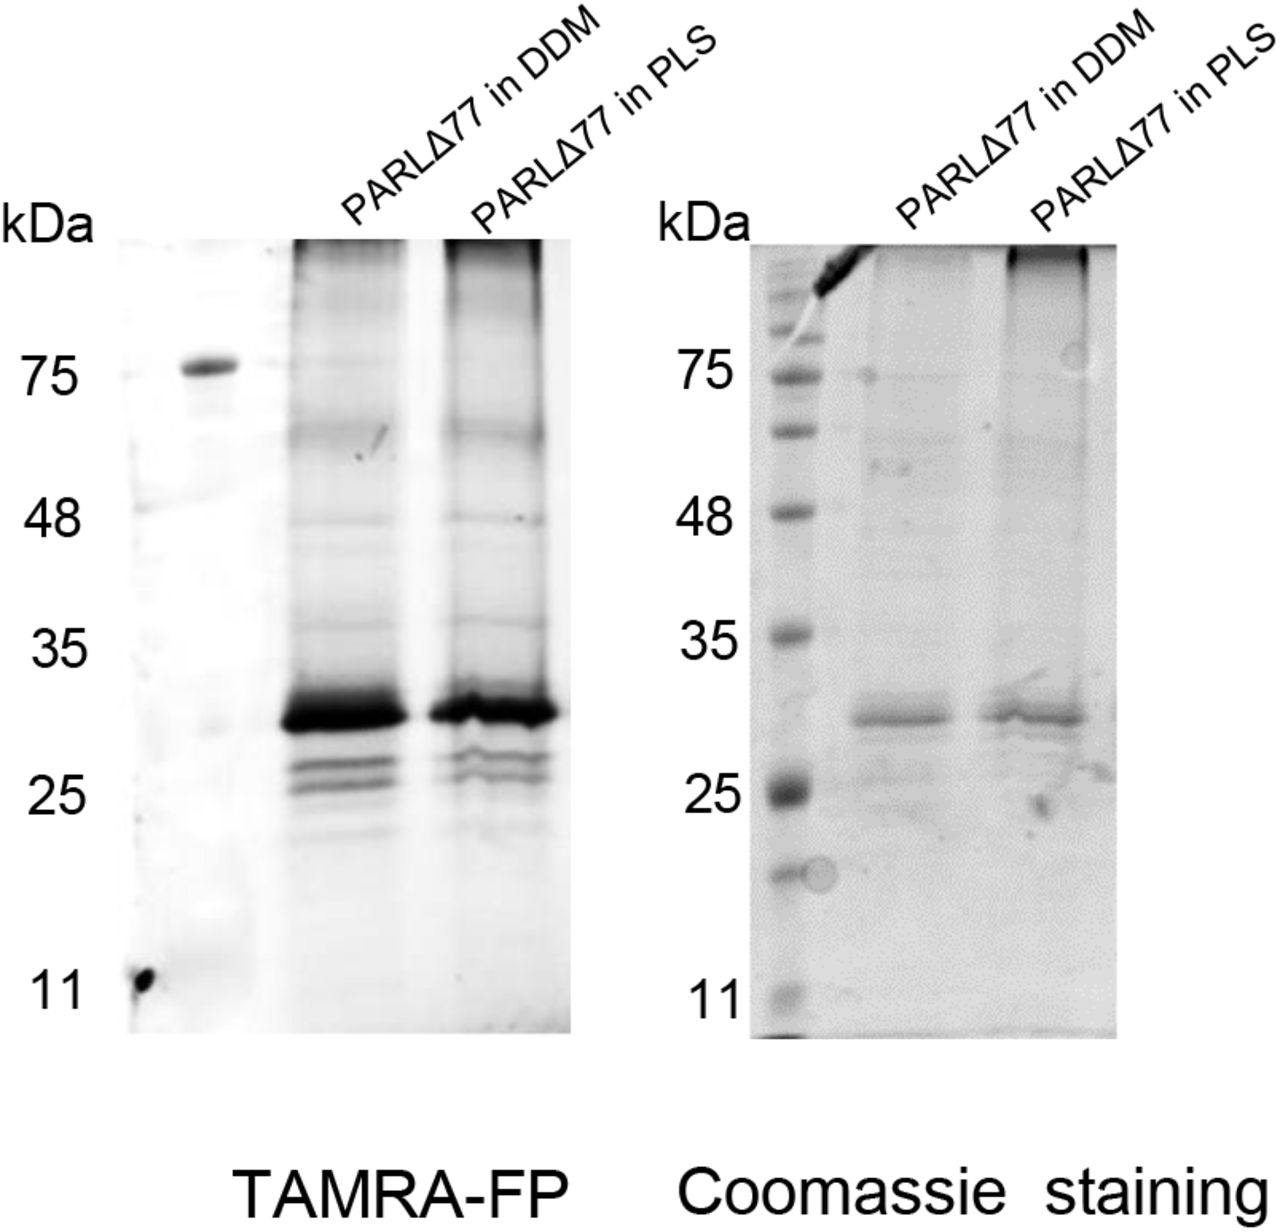 SDS-PAGE of PARL with TAMRA probe. To determine orientation of PARL in the proteoliposomes, PARL in PLs was incubated with TAMRA and then separated on a 14% SDS-PAGE gel. The fluorescent TAMRA probe was visualized using an imager (left) and also stained with <t>Coomassie</t> blue (right).